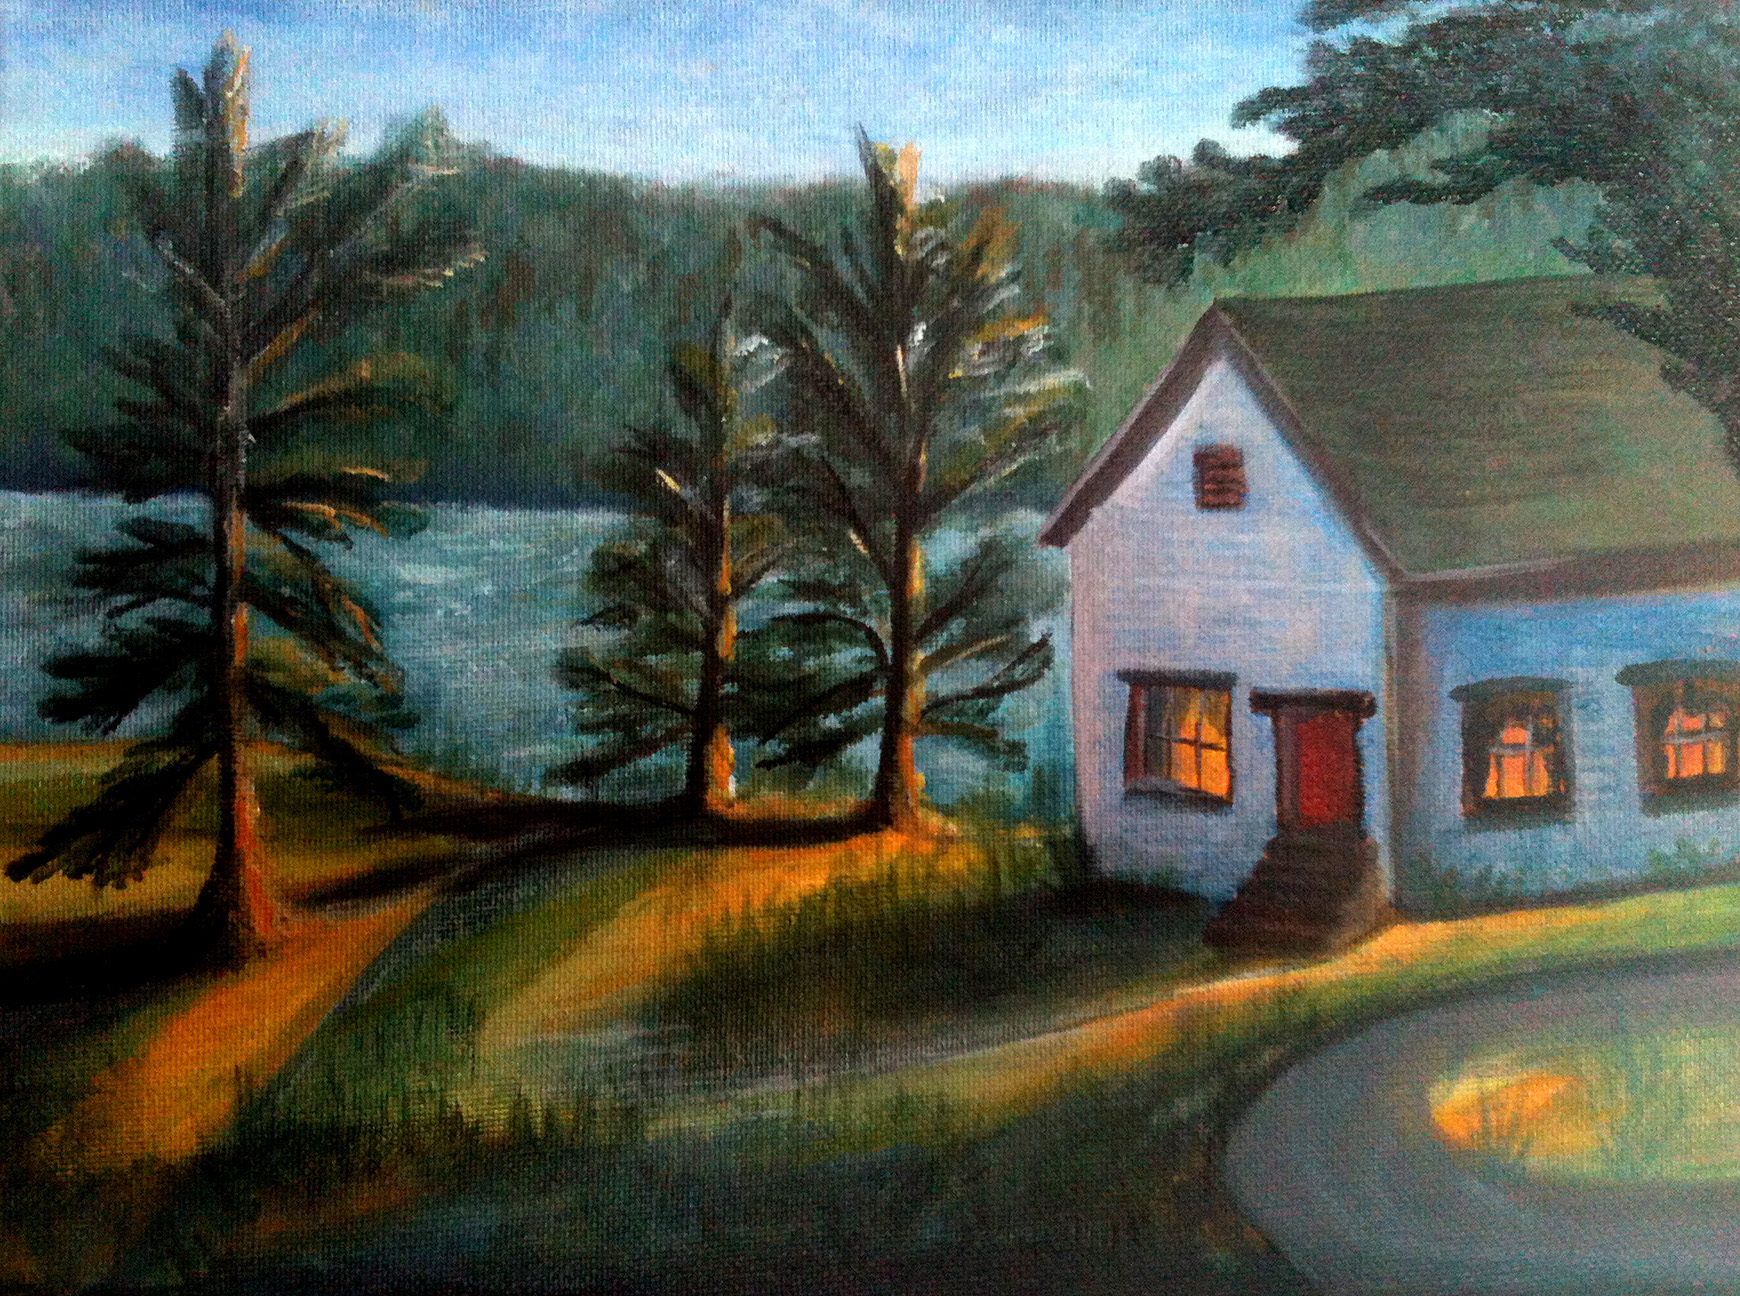 """House by the River"" - sold"